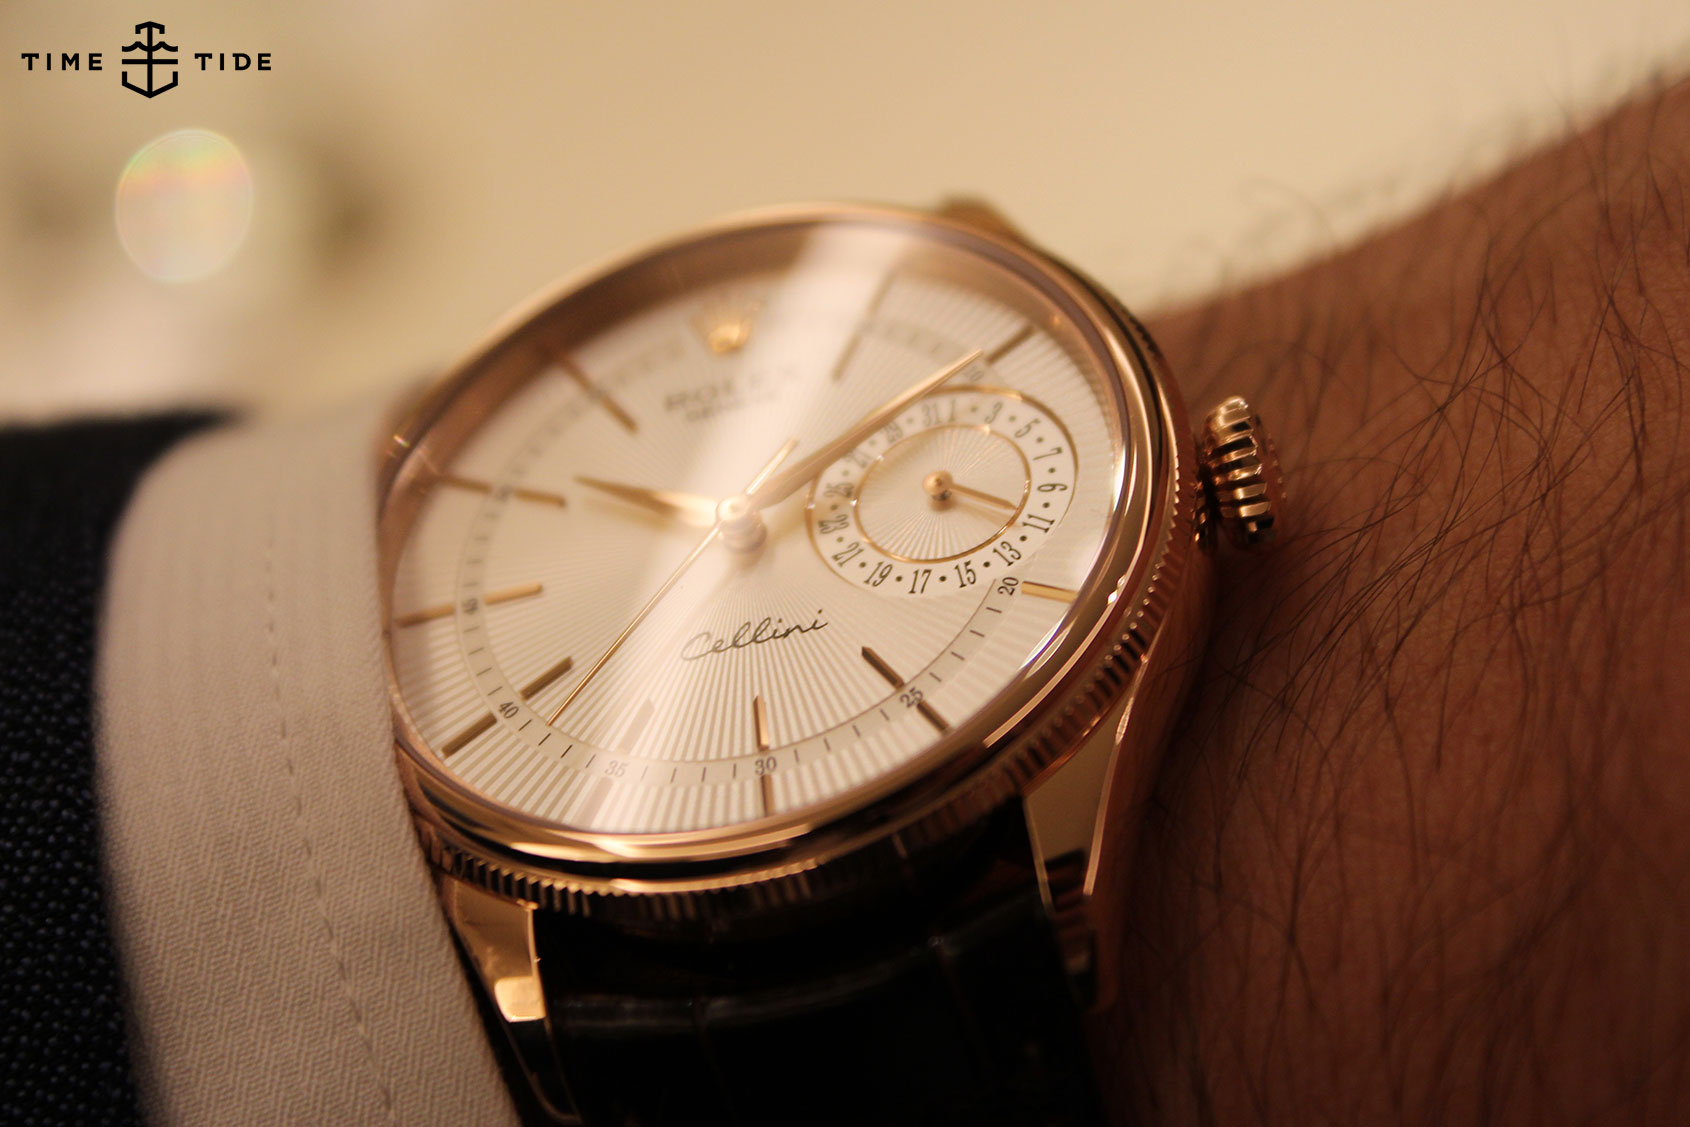 Rolex 2014 Cellini Collection – First Look